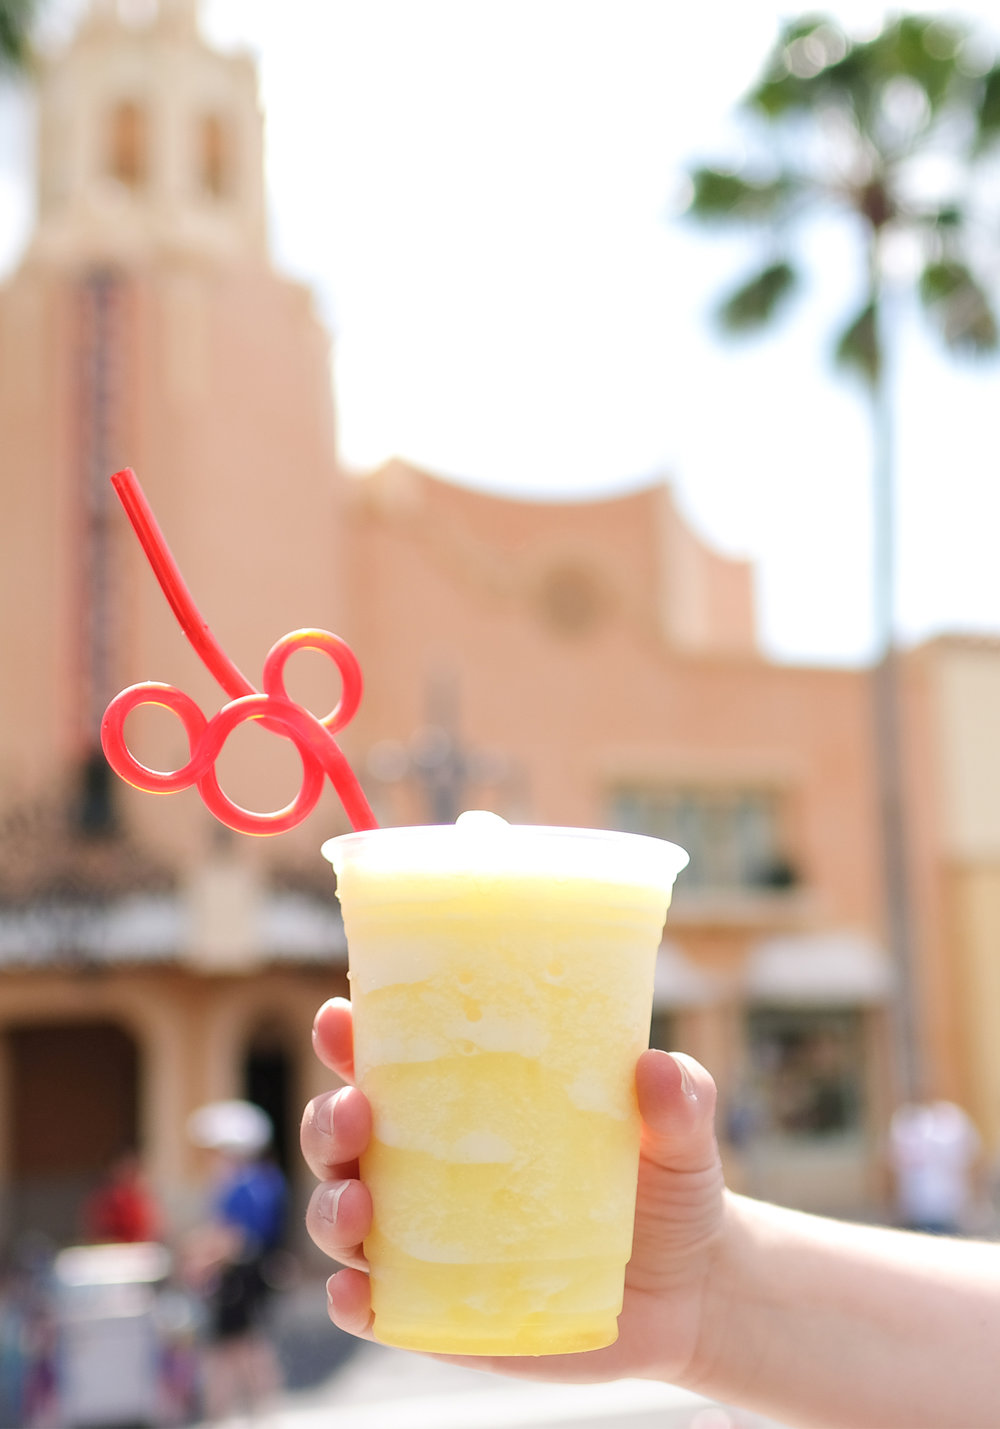 Disney Snack Frozen Lemonade